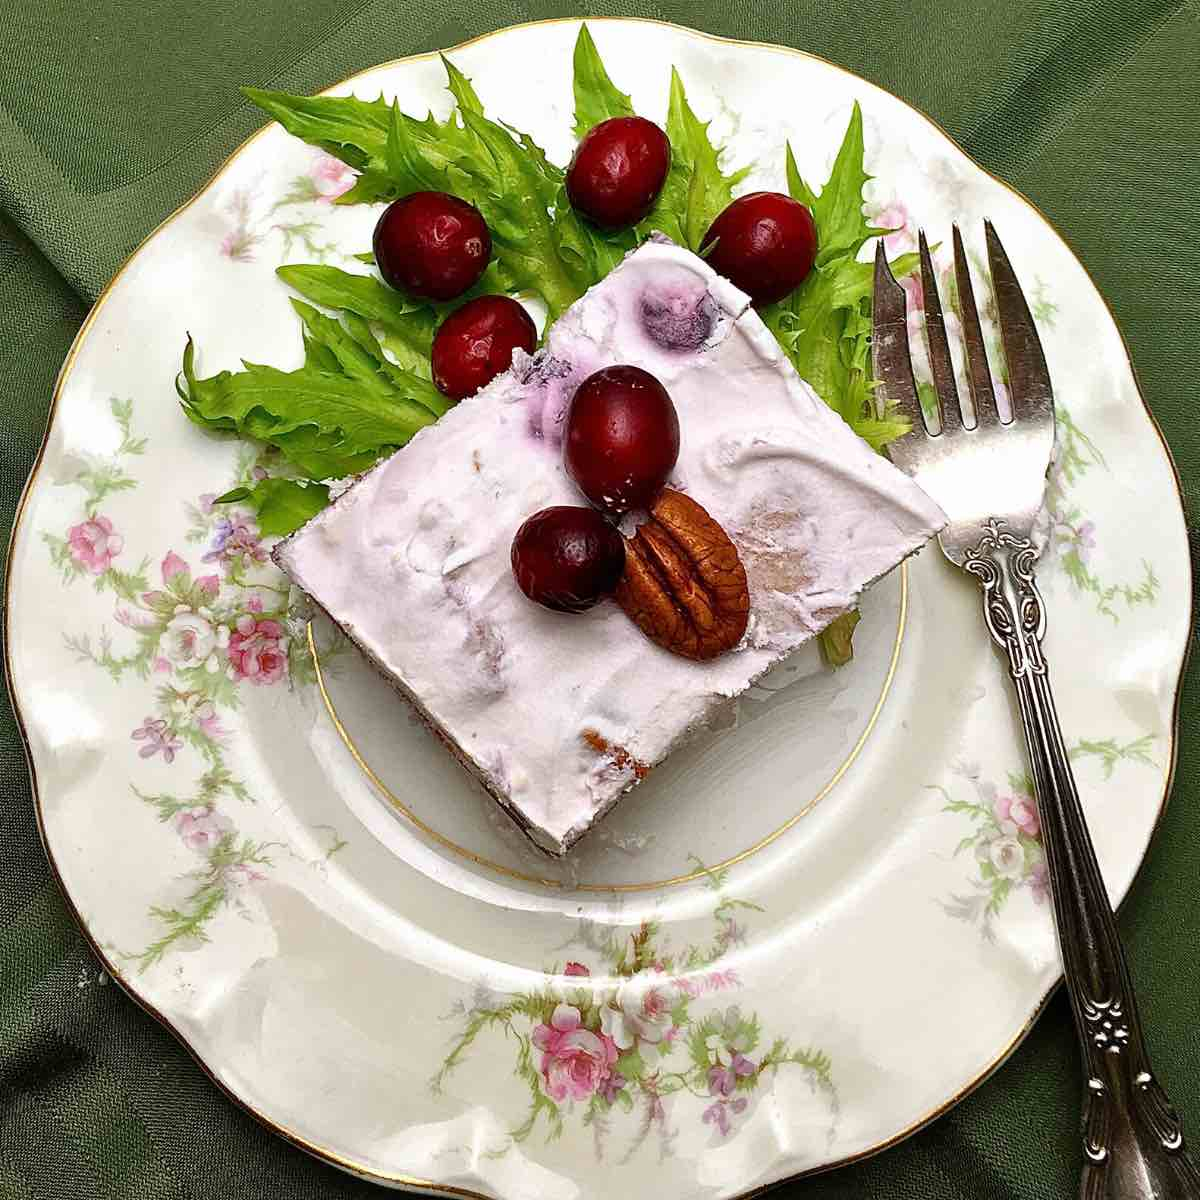 A square of frozen fruit salad garnished with cherries and nuts.